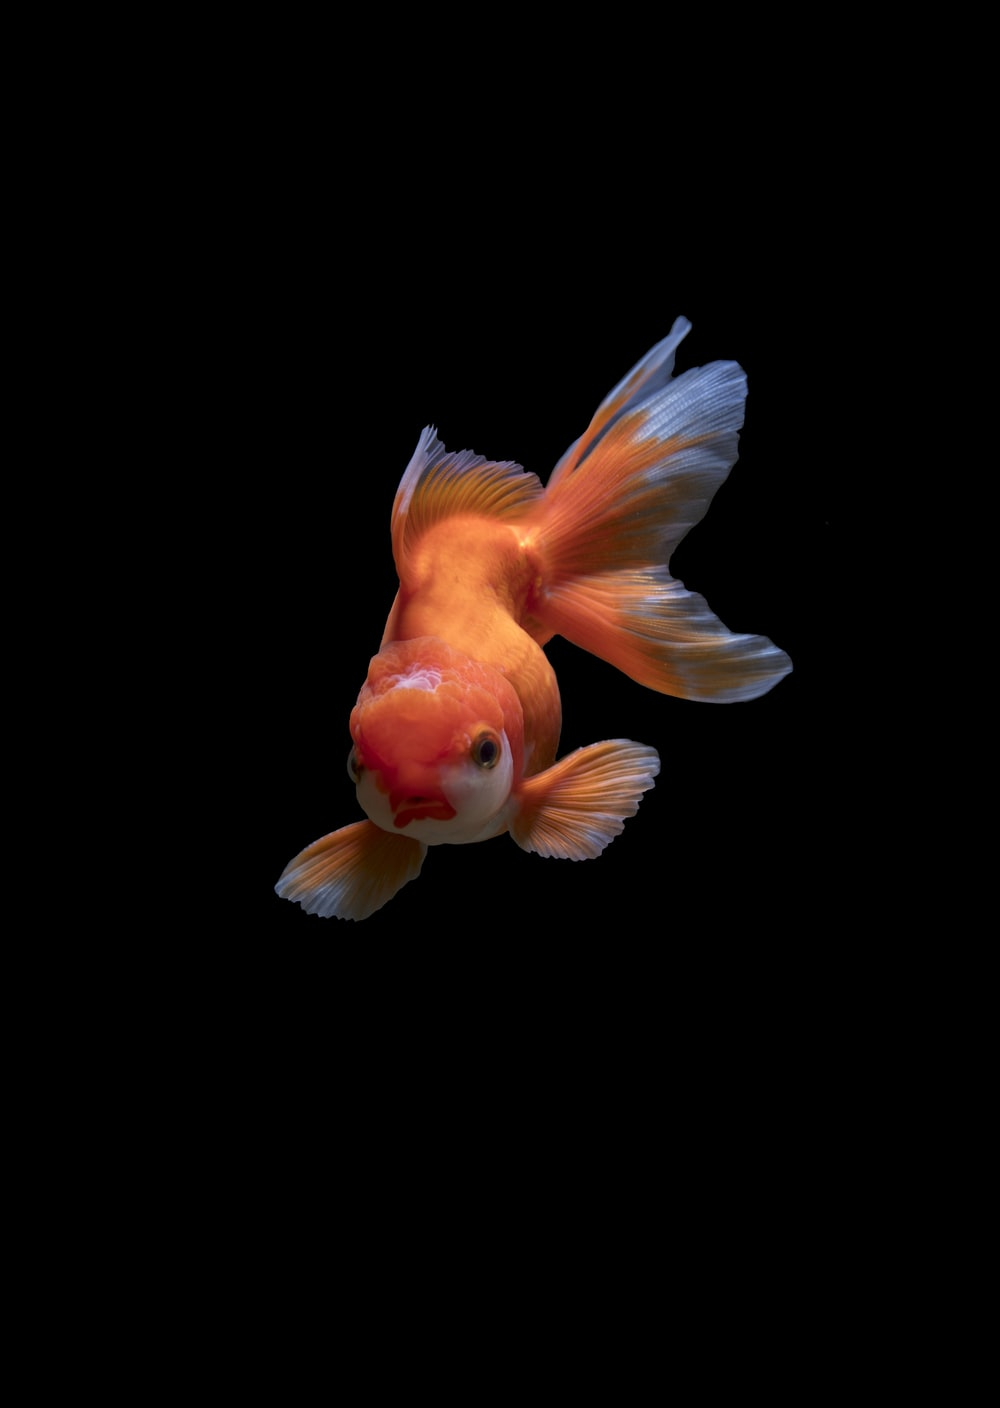 100 Fish Images Download Free Images Stock Photos On Unsplash